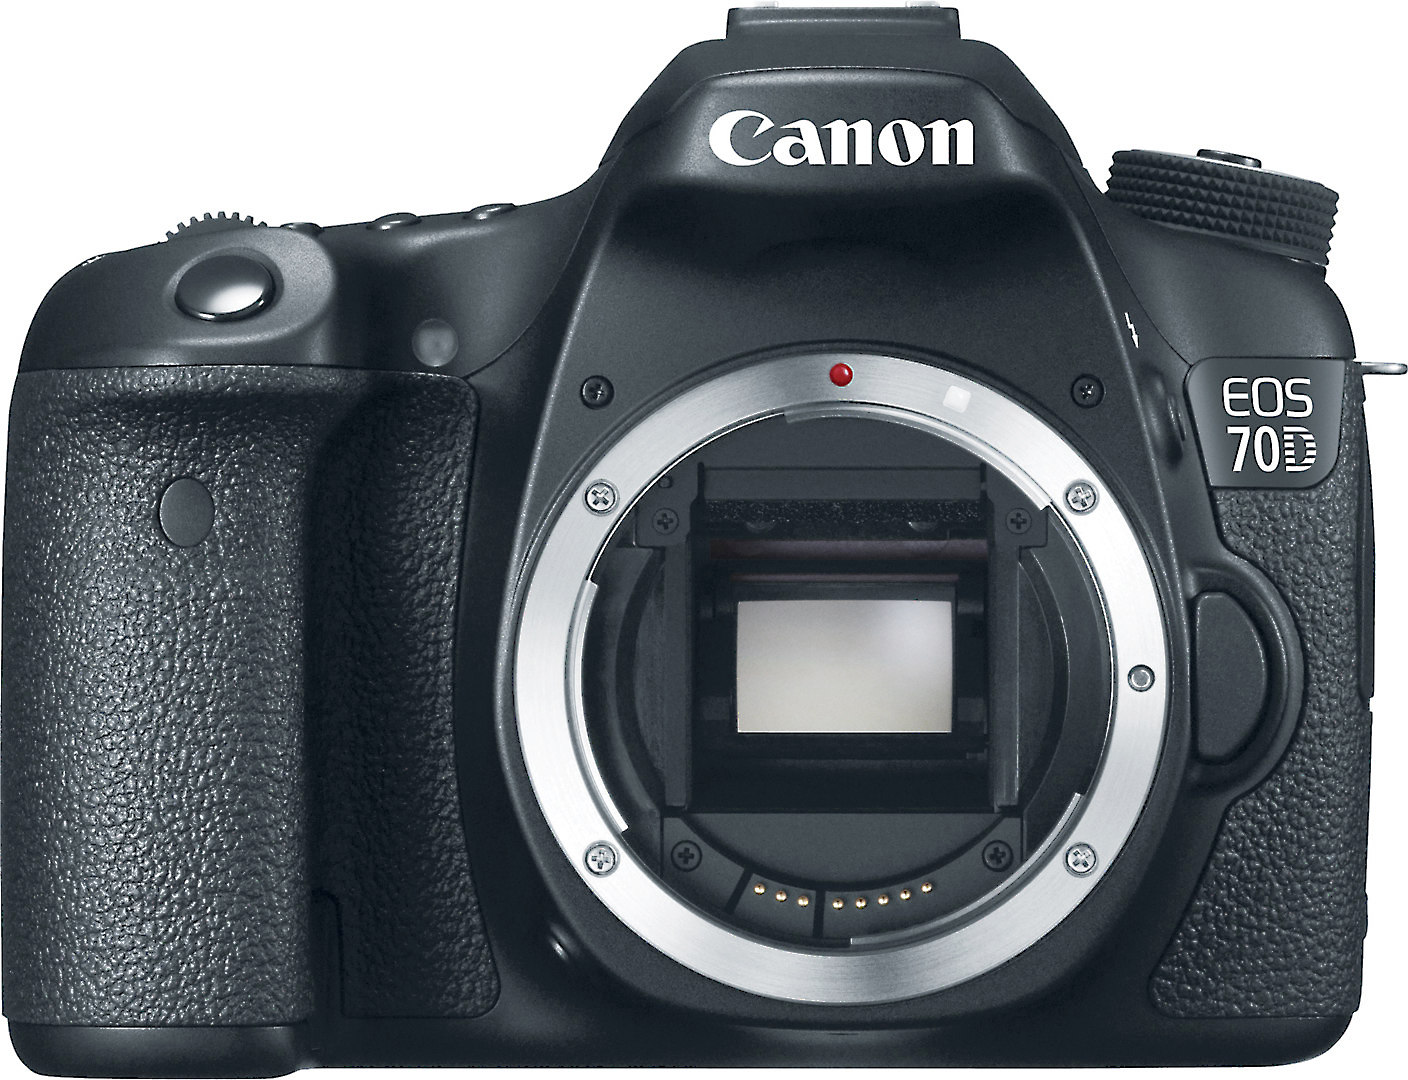 Canon Eos 70d No Lens Included 20 Megapixel Digital Slr Camera With Dual Pixel Cmos Autofocus And Wi Fi At Crutchfield